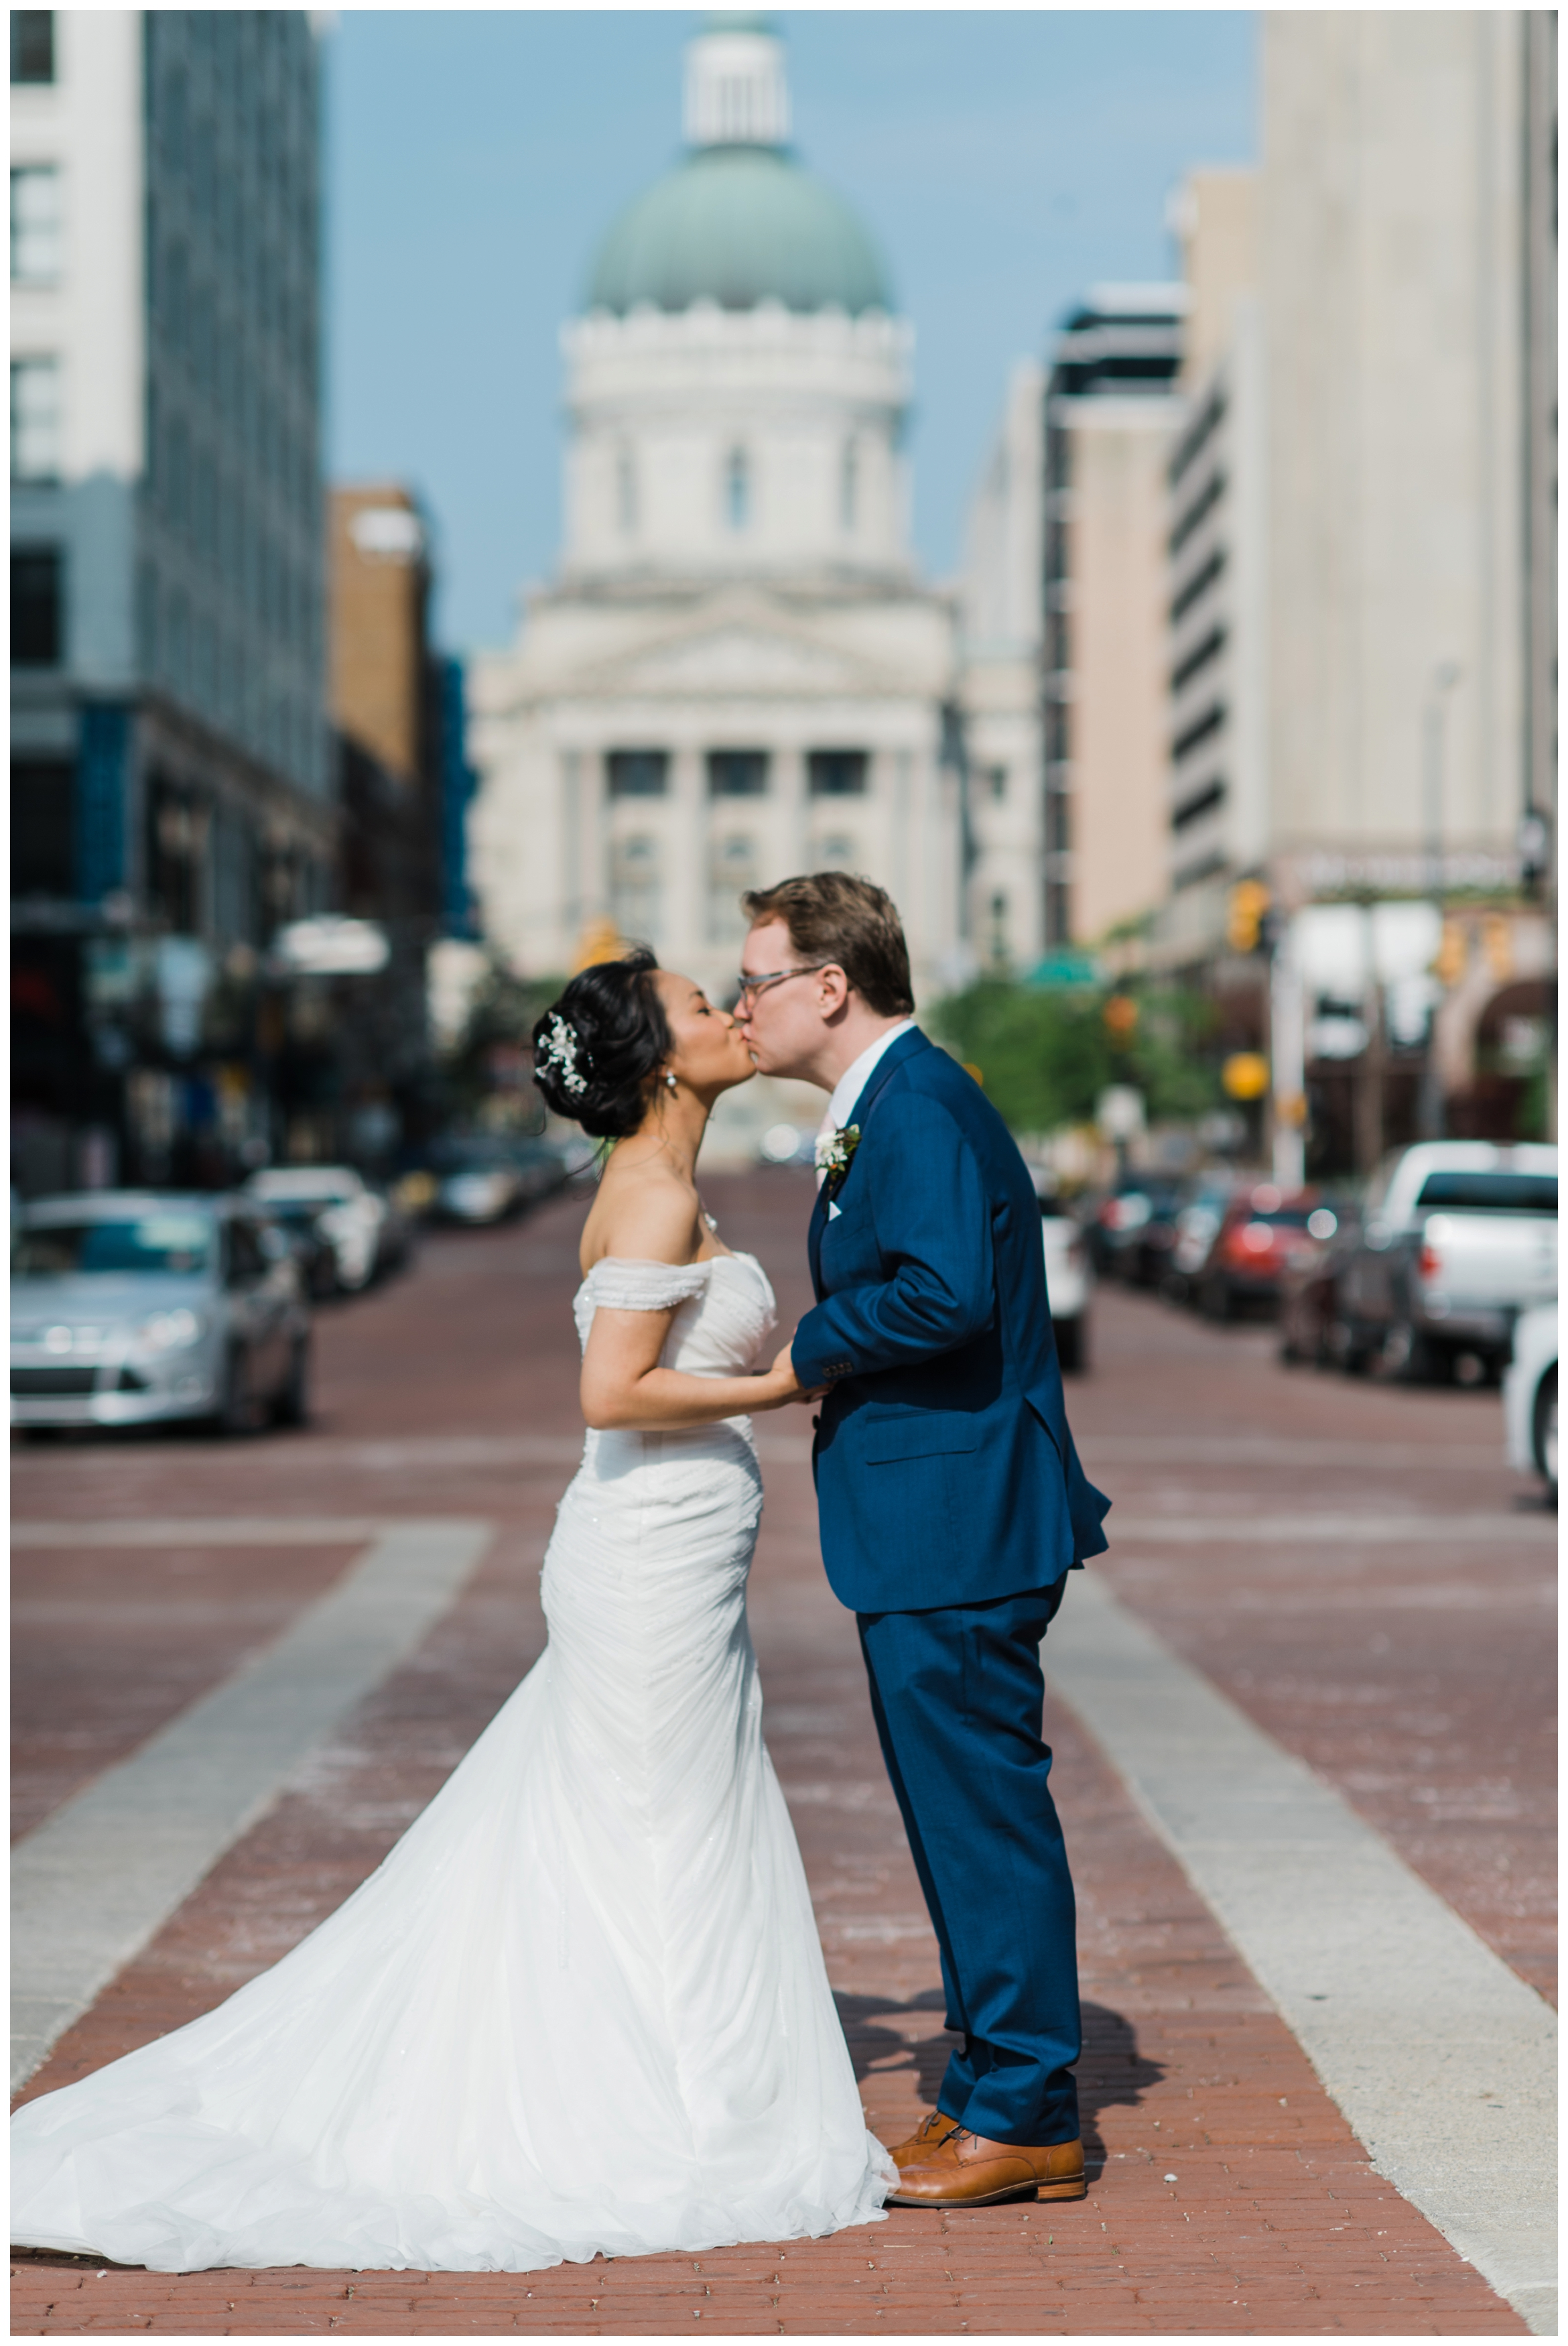 Rebecca_Shehorn_Photography_Indianapolis_Wedding_Photographer_8110.jpg